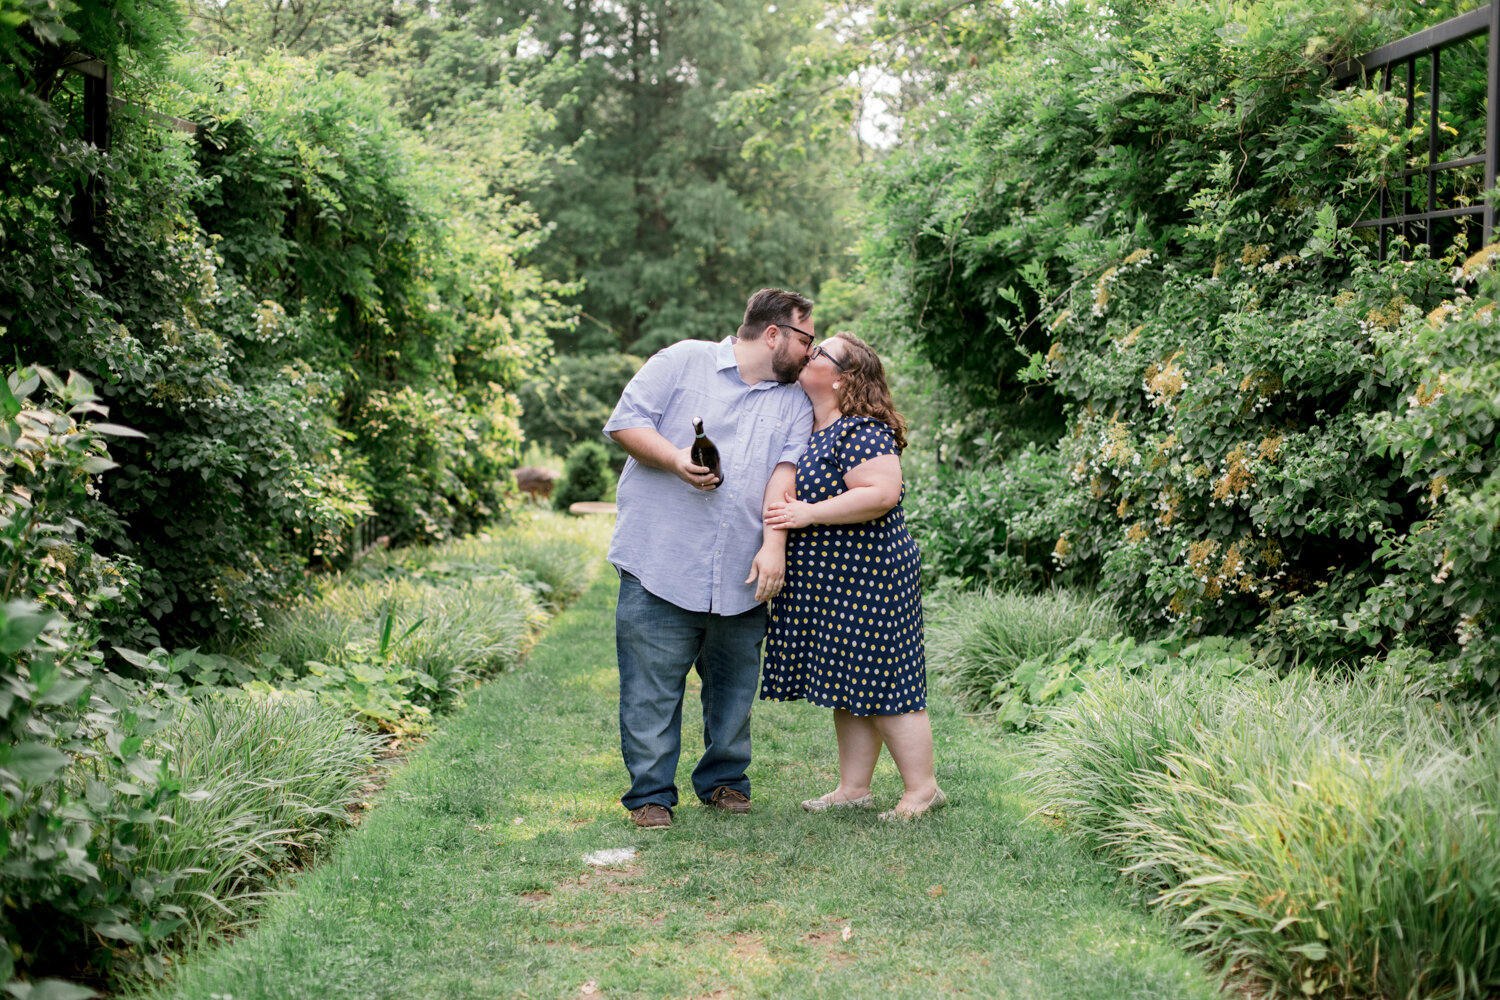 morris-arboretum-chestnut-hill-garden-engagement-session-philadelphia-wedding-photography-18.jpg